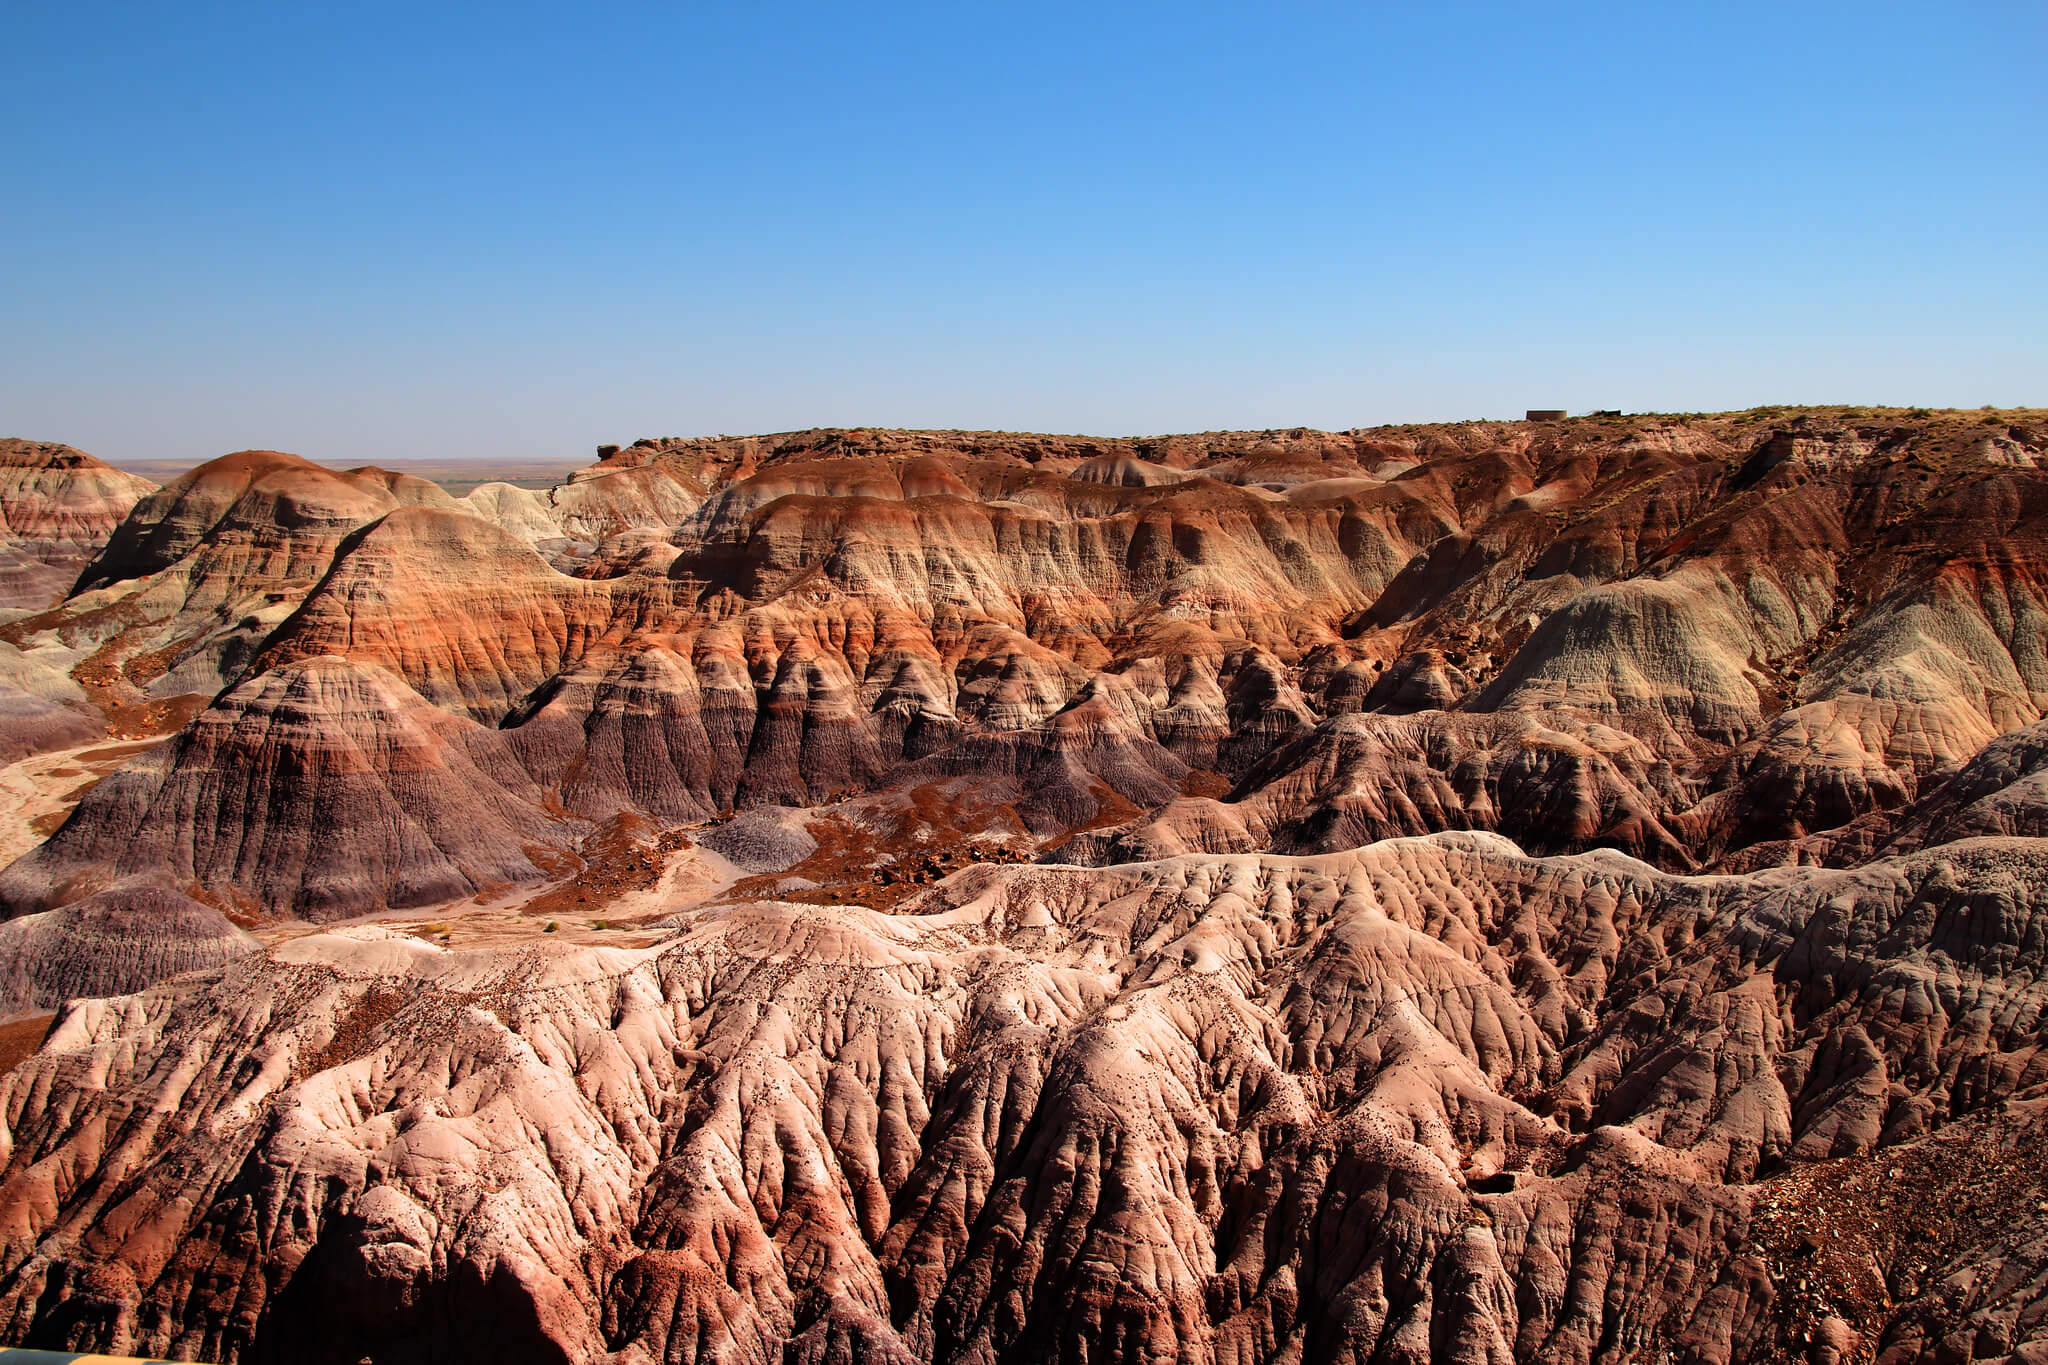 Mountainous rock formations abound on the Painted Desert.